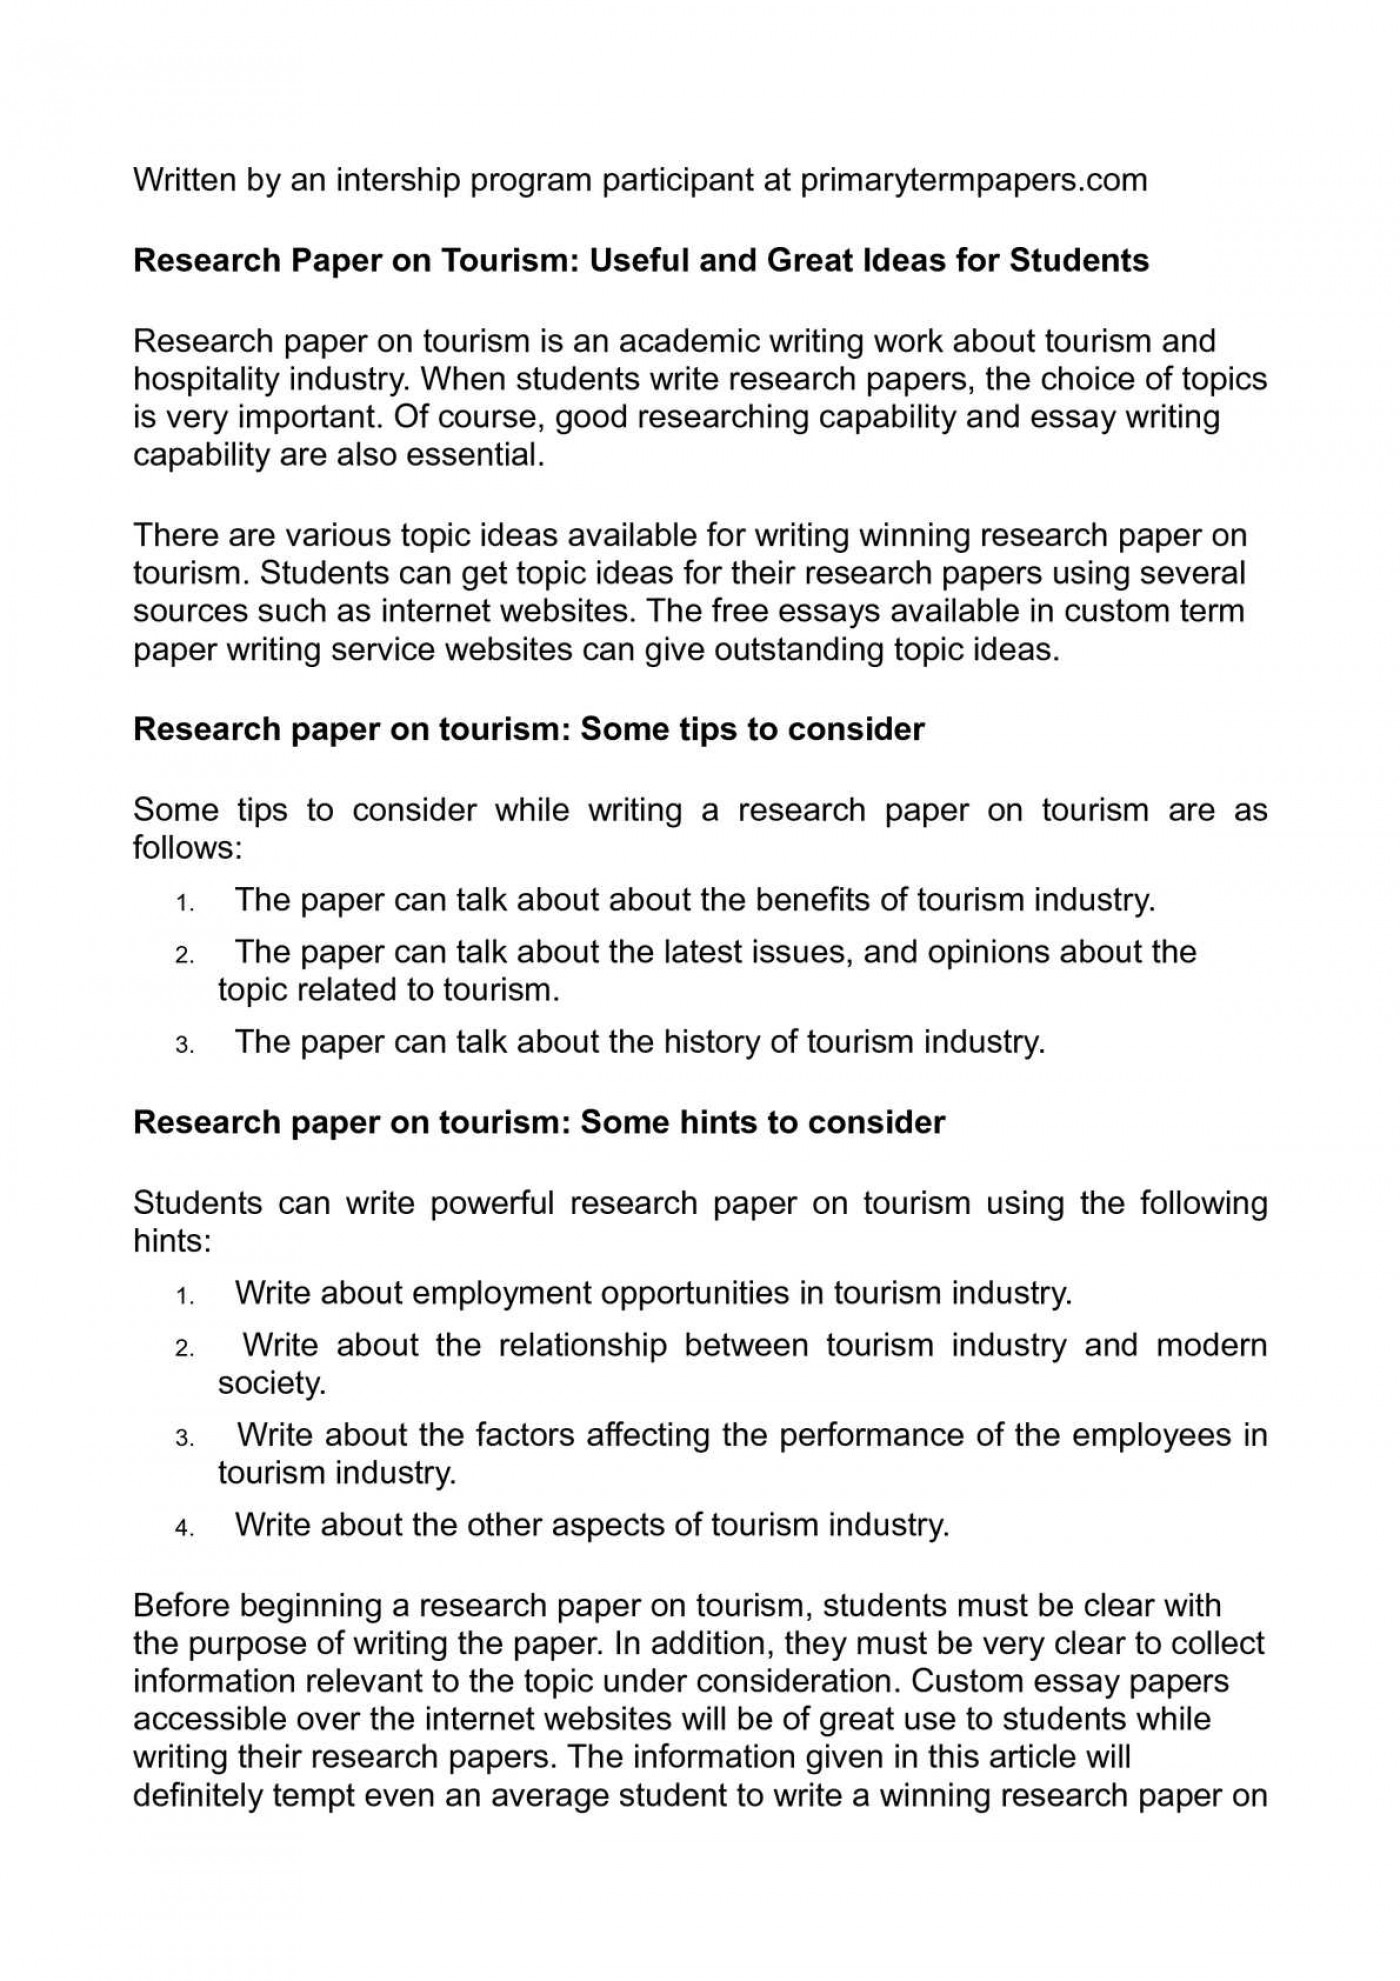 009 Research Paper Ideas For Fascinating Papers In Economics High School College 1400